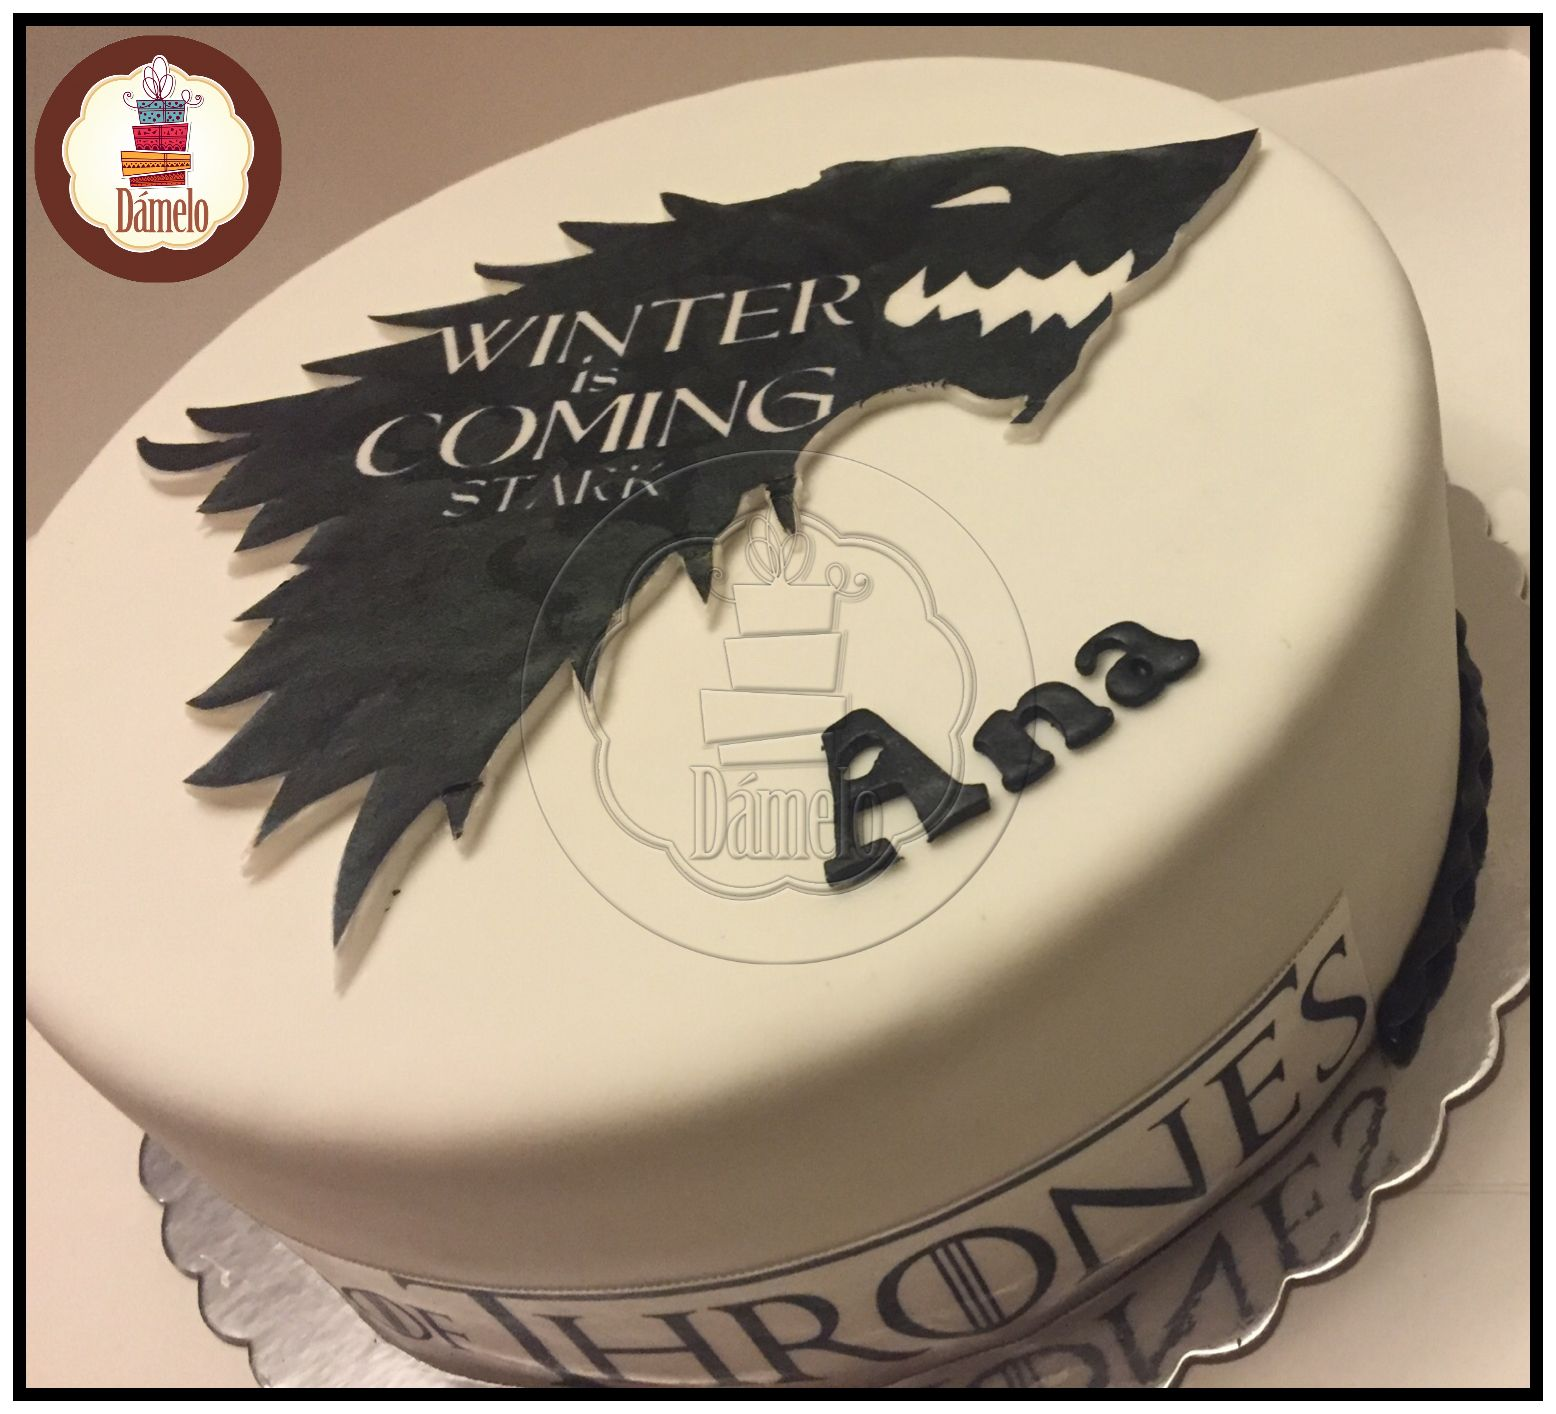 game of thrones torta sabor zanahoria con pasas y. Black Bedroom Furniture Sets. Home Design Ideas